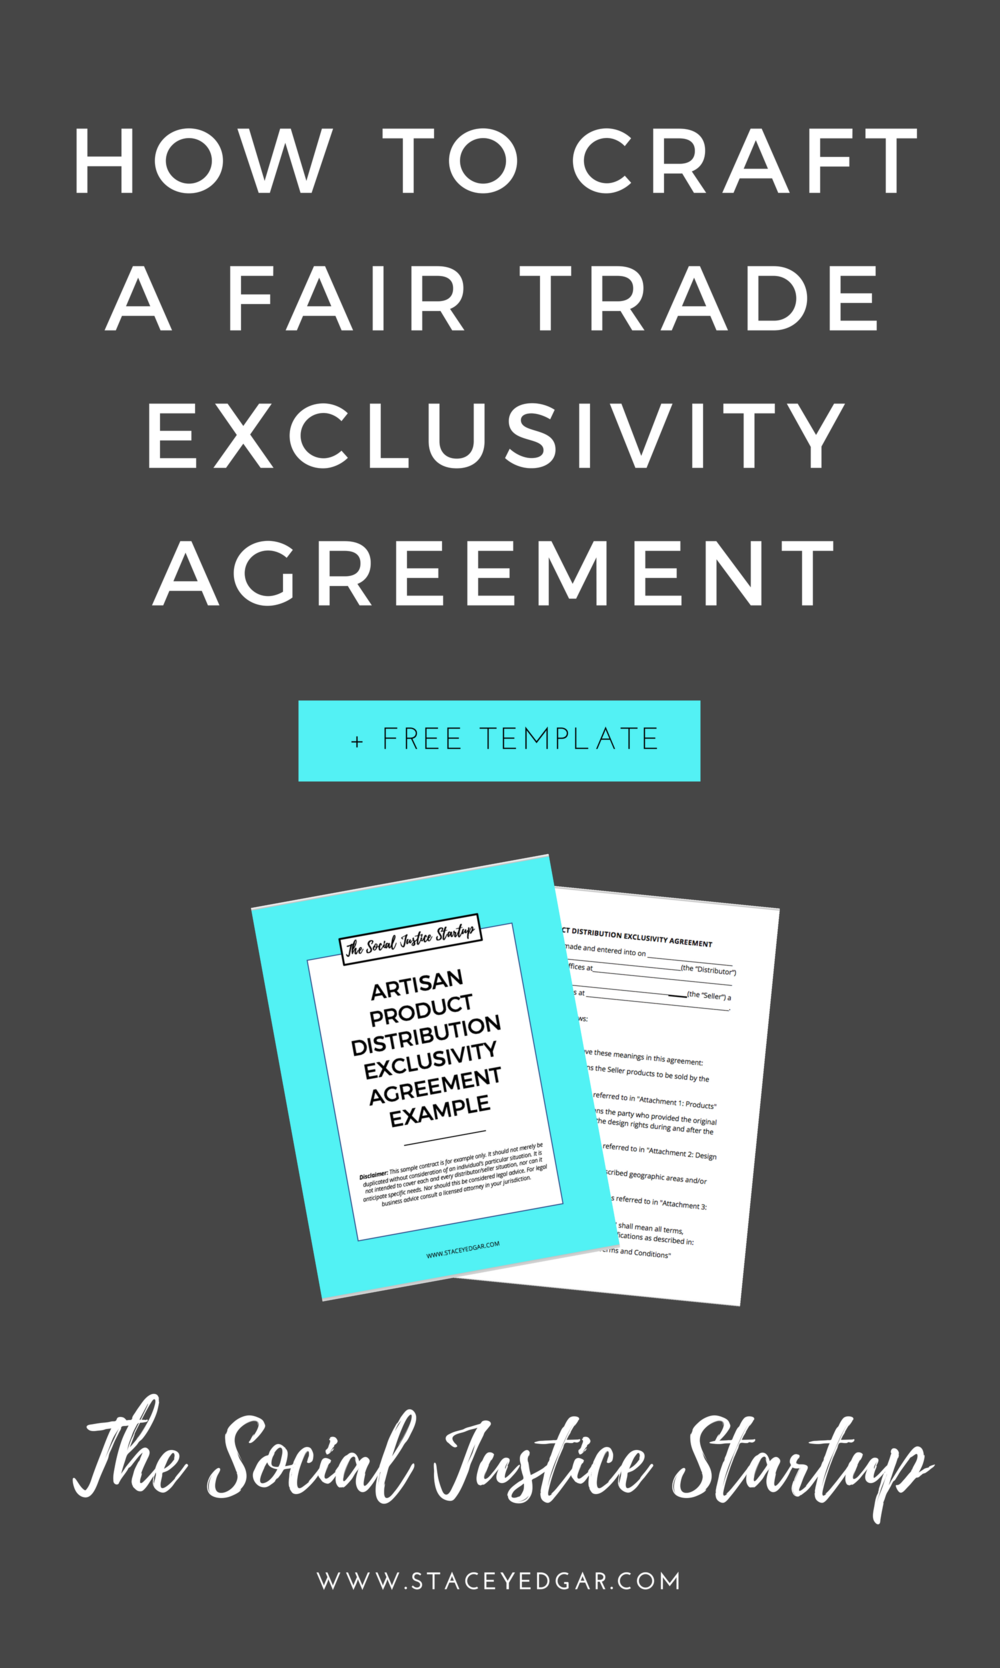 How to Craft a Fair Trade Exclusivity Agreement.png